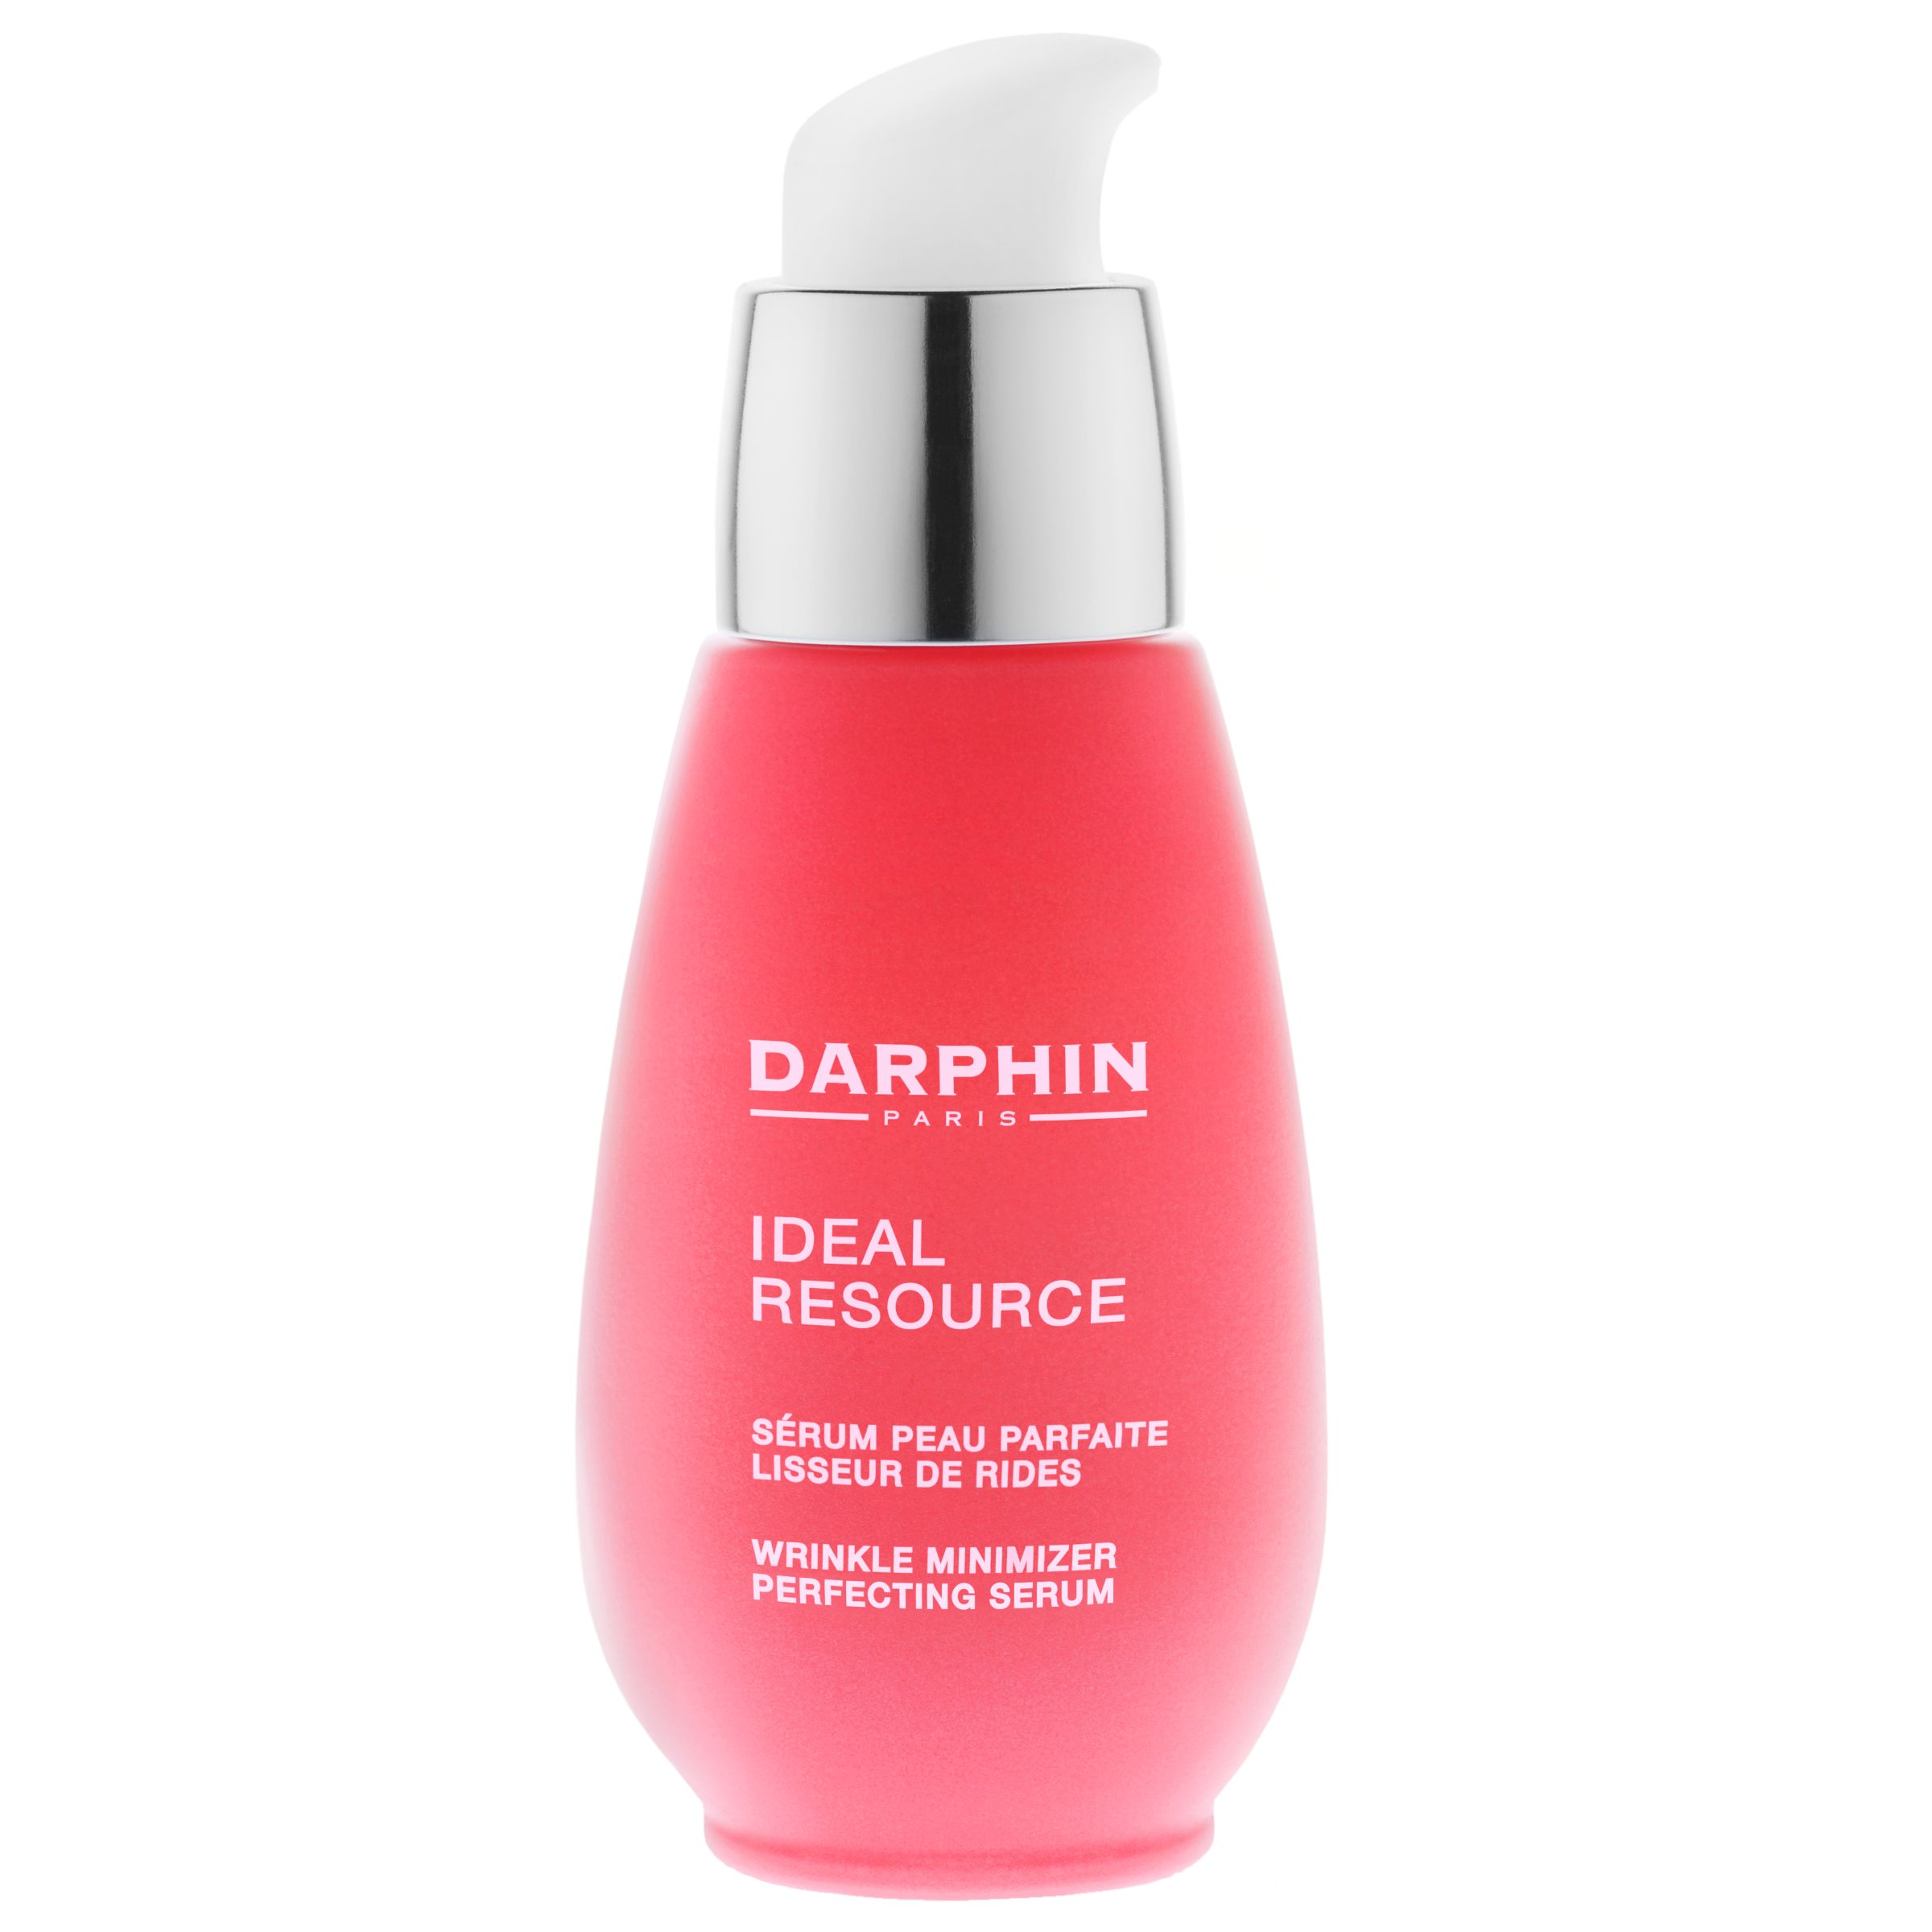 Darphin Darphin Ideal Resource Wrinkle Minimiser Perfecting Serum, 30ml